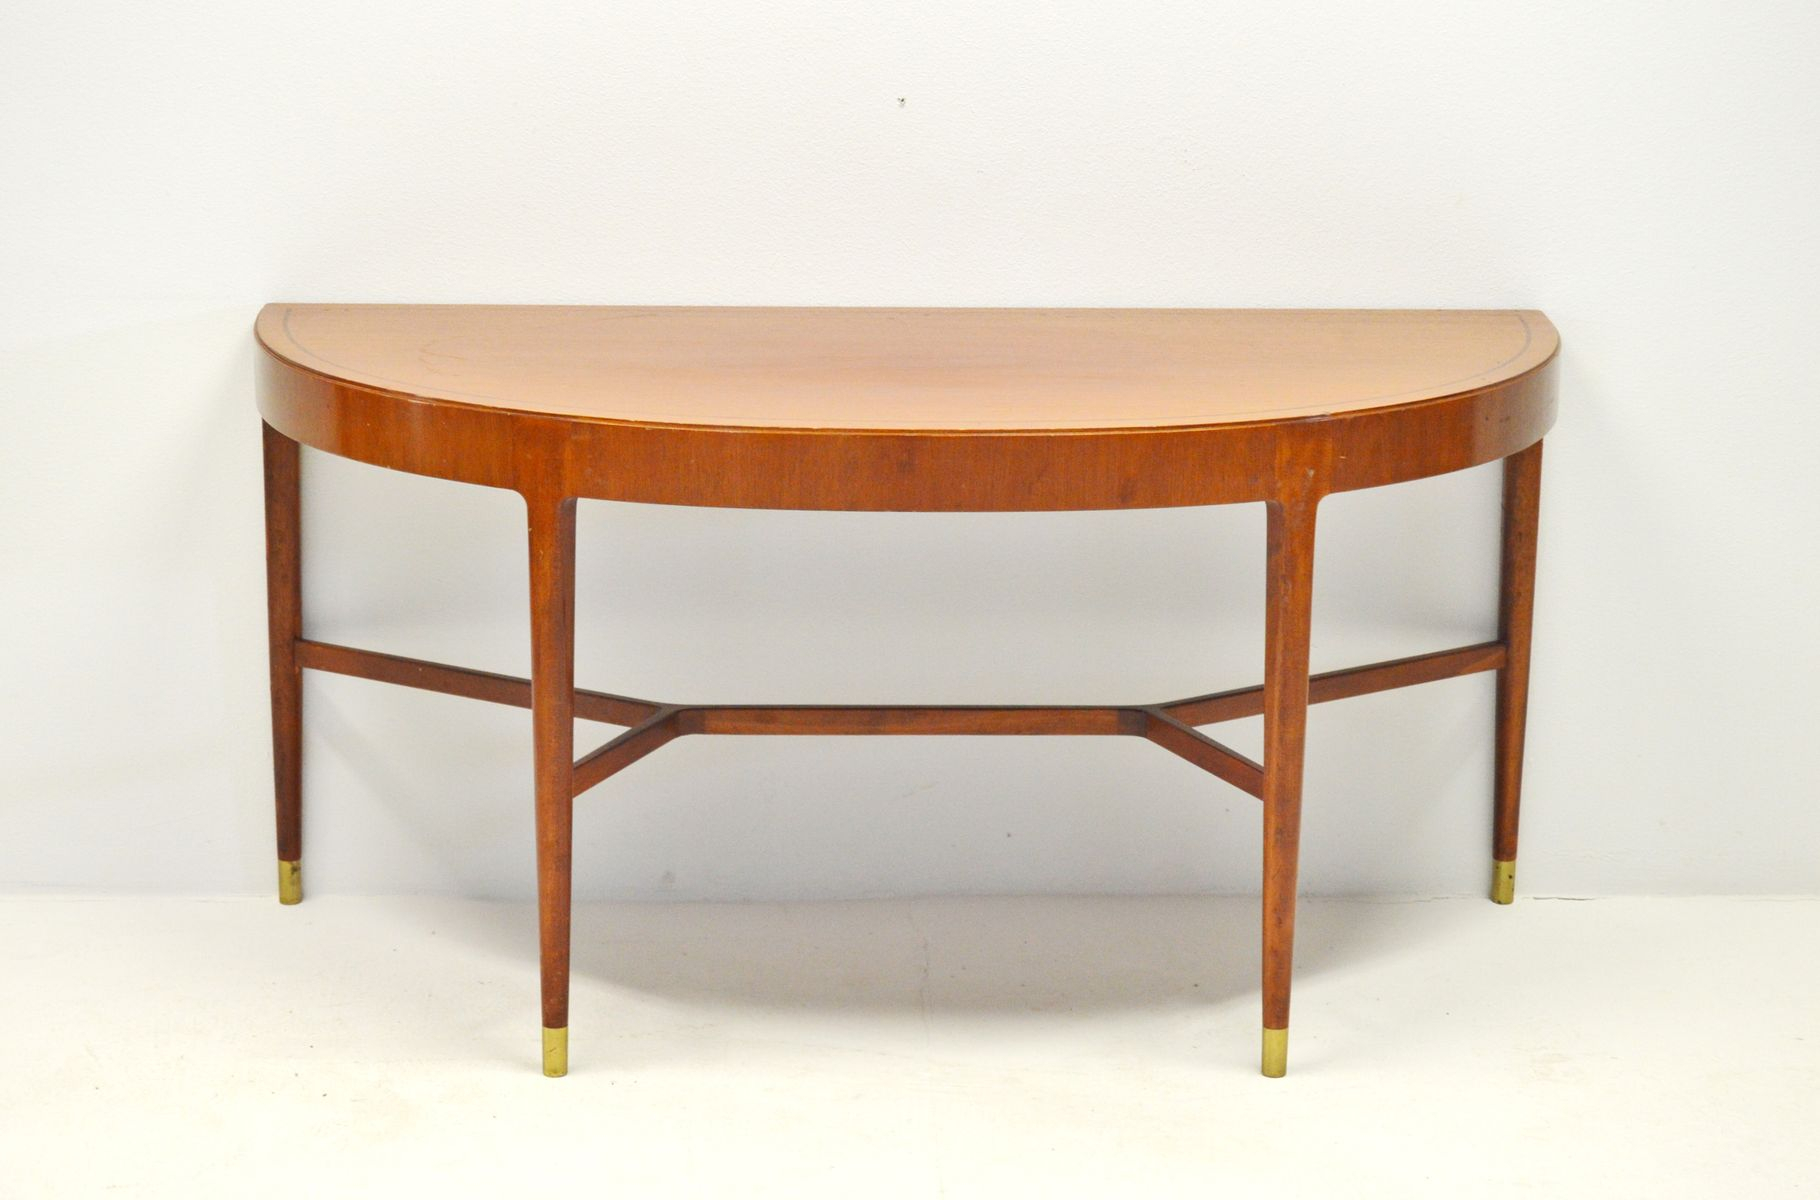 Mahogany Console Table With Brass Fittings, 1950S For Sale At Pamono For Intarsia Console Tables (View 18 of 30)